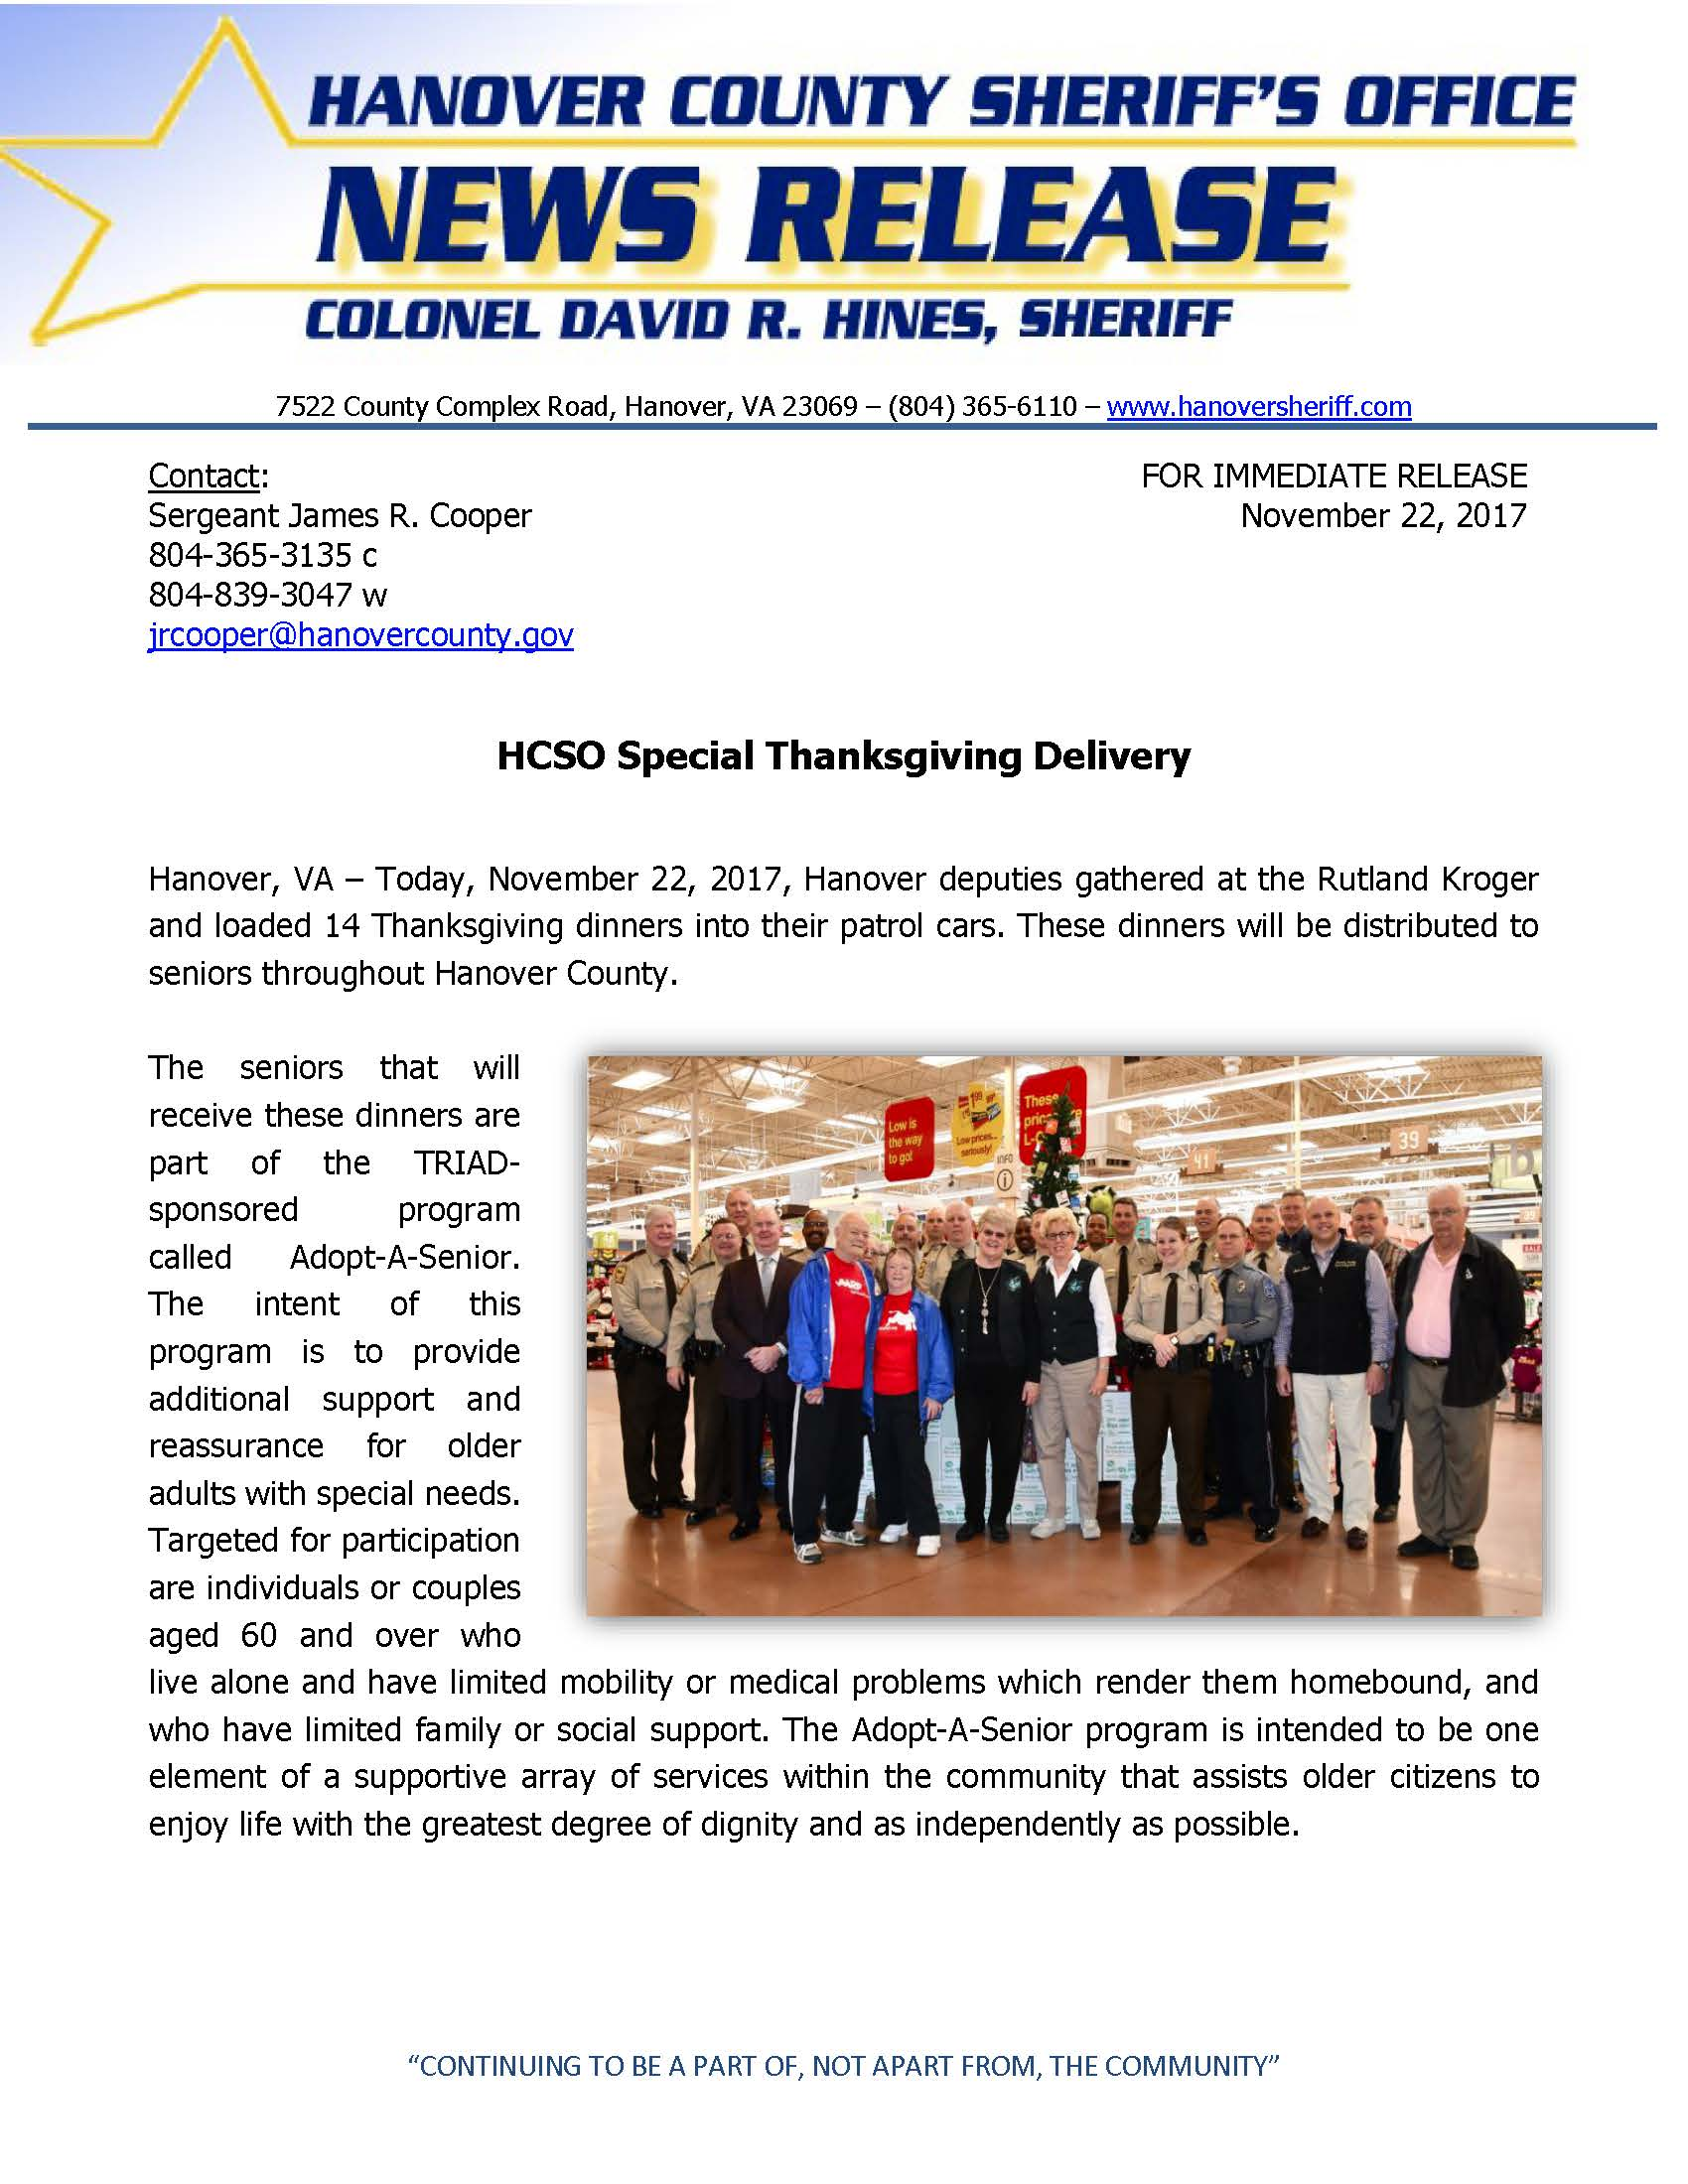 HCSO - Adopt-A-Senior Turkey Dinner- November 2017_Page_1